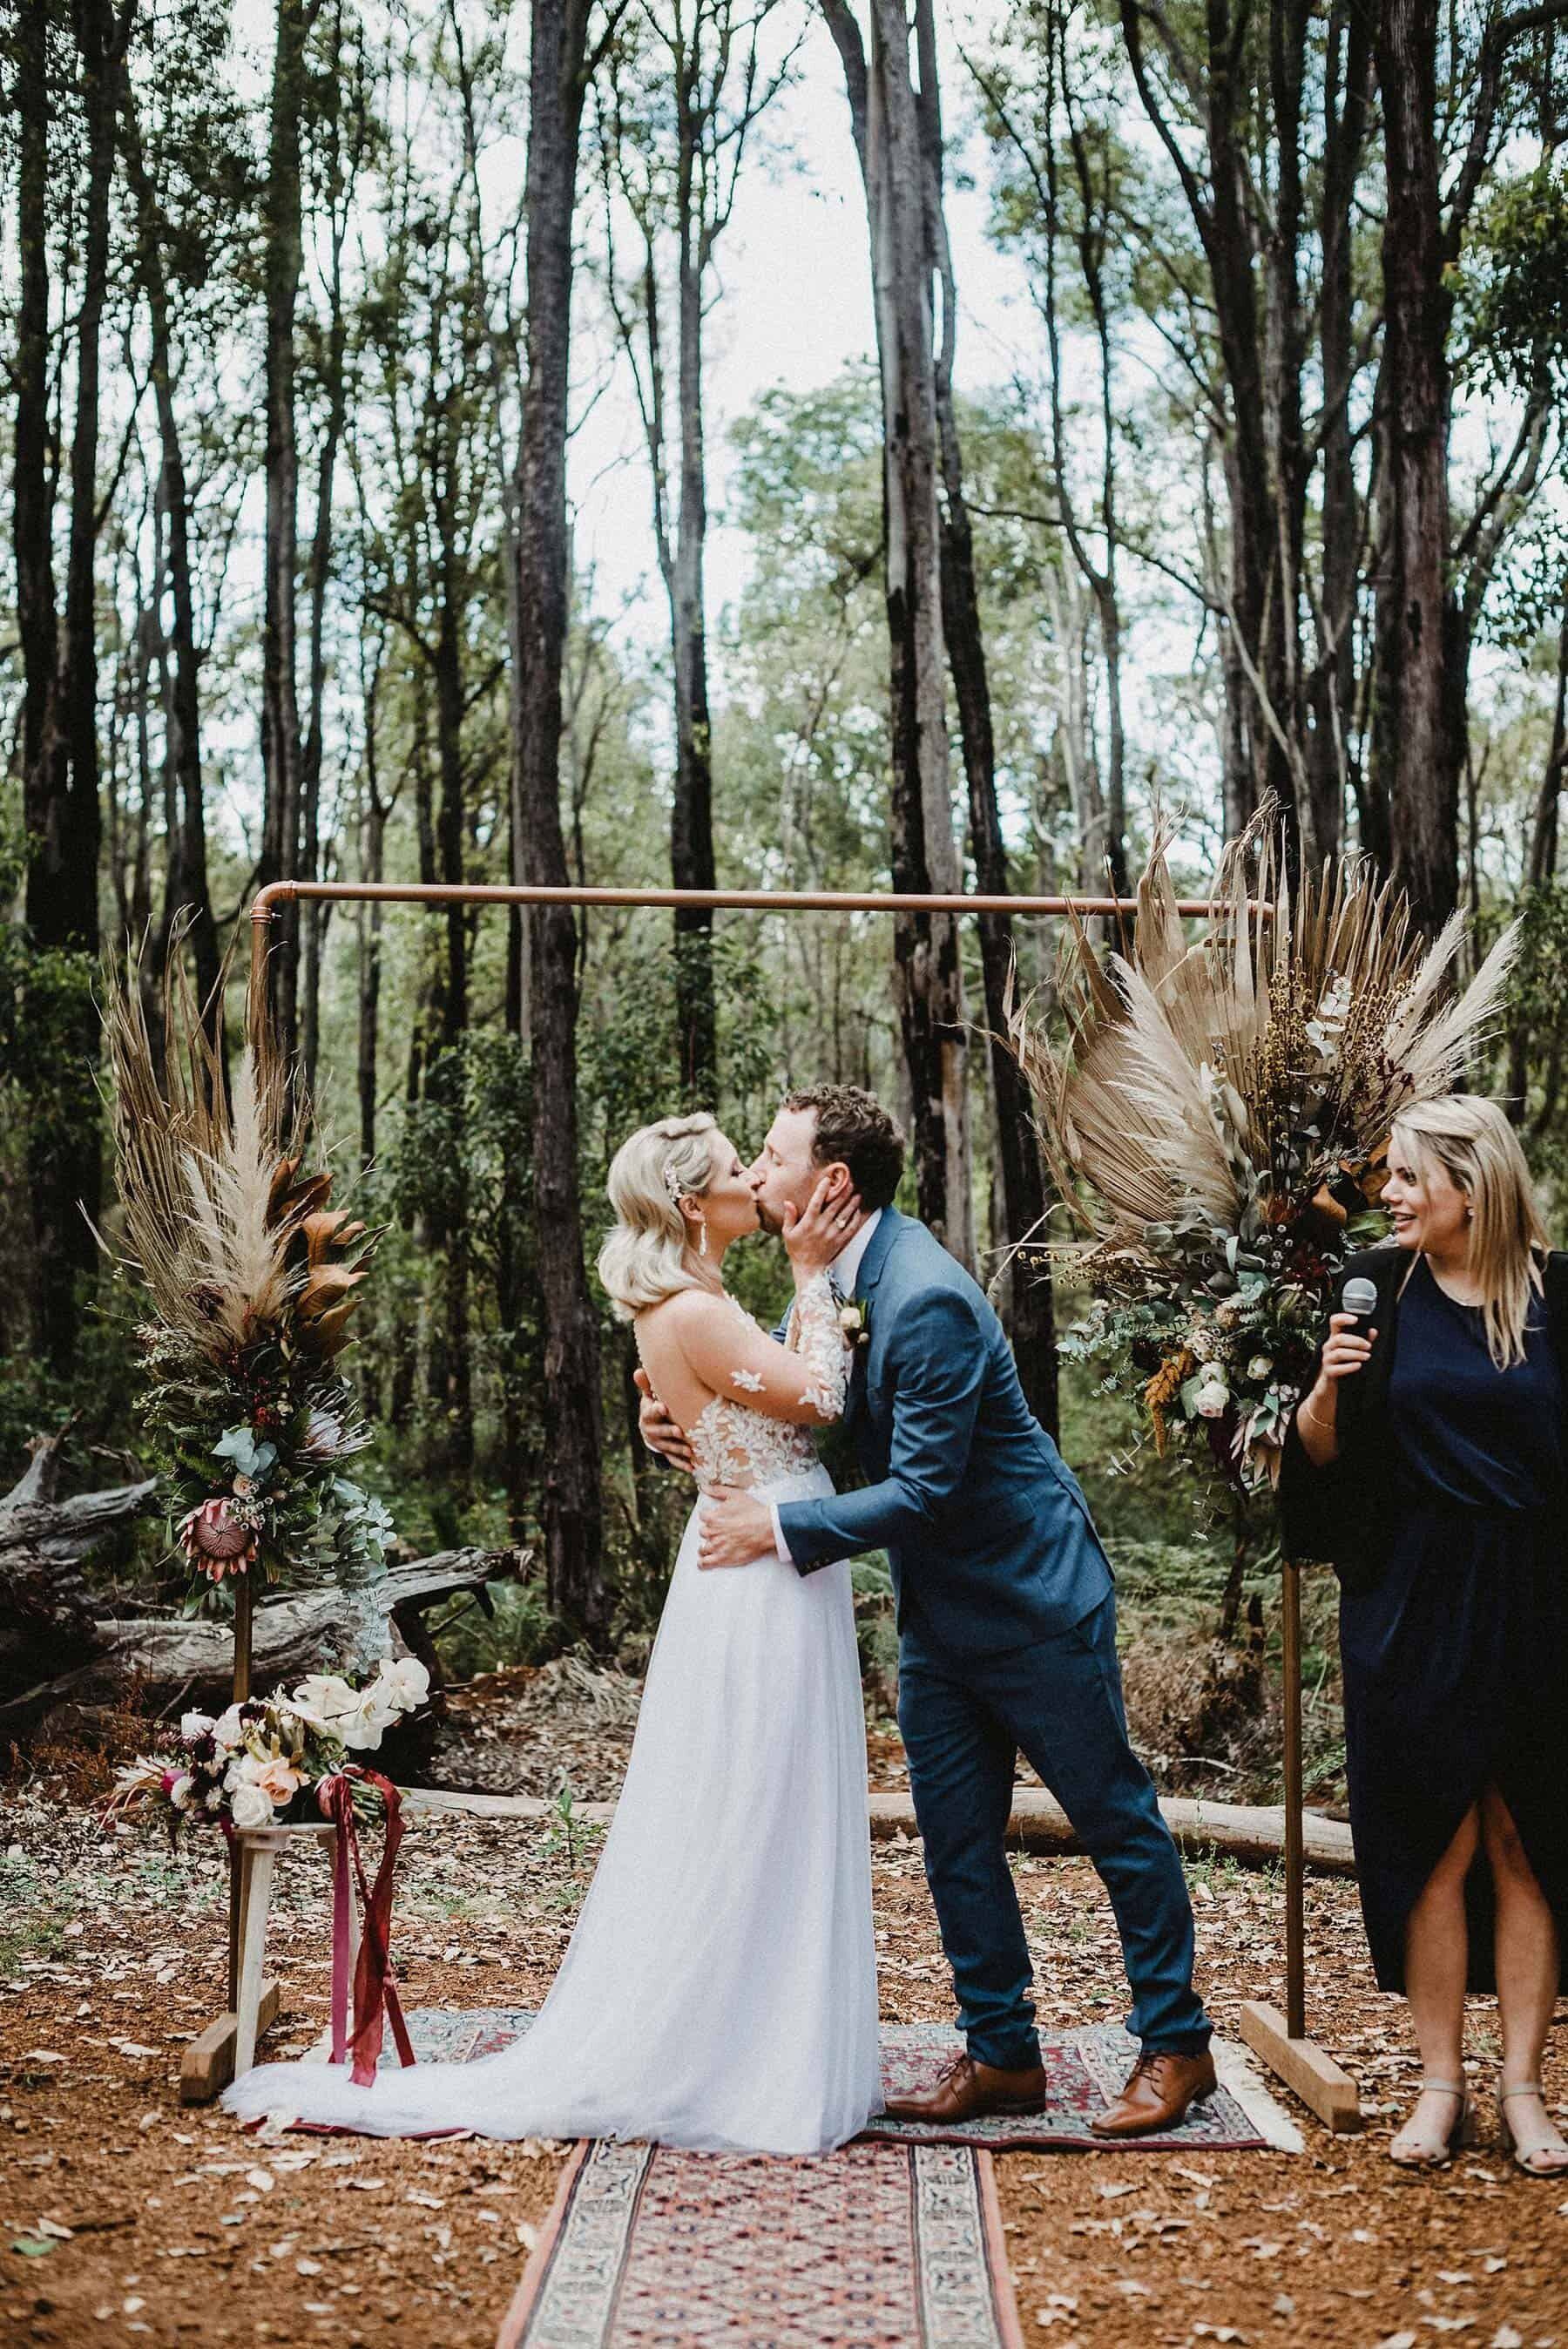 Paula & Jo bridal gown with groom's navy suit in forest wedding